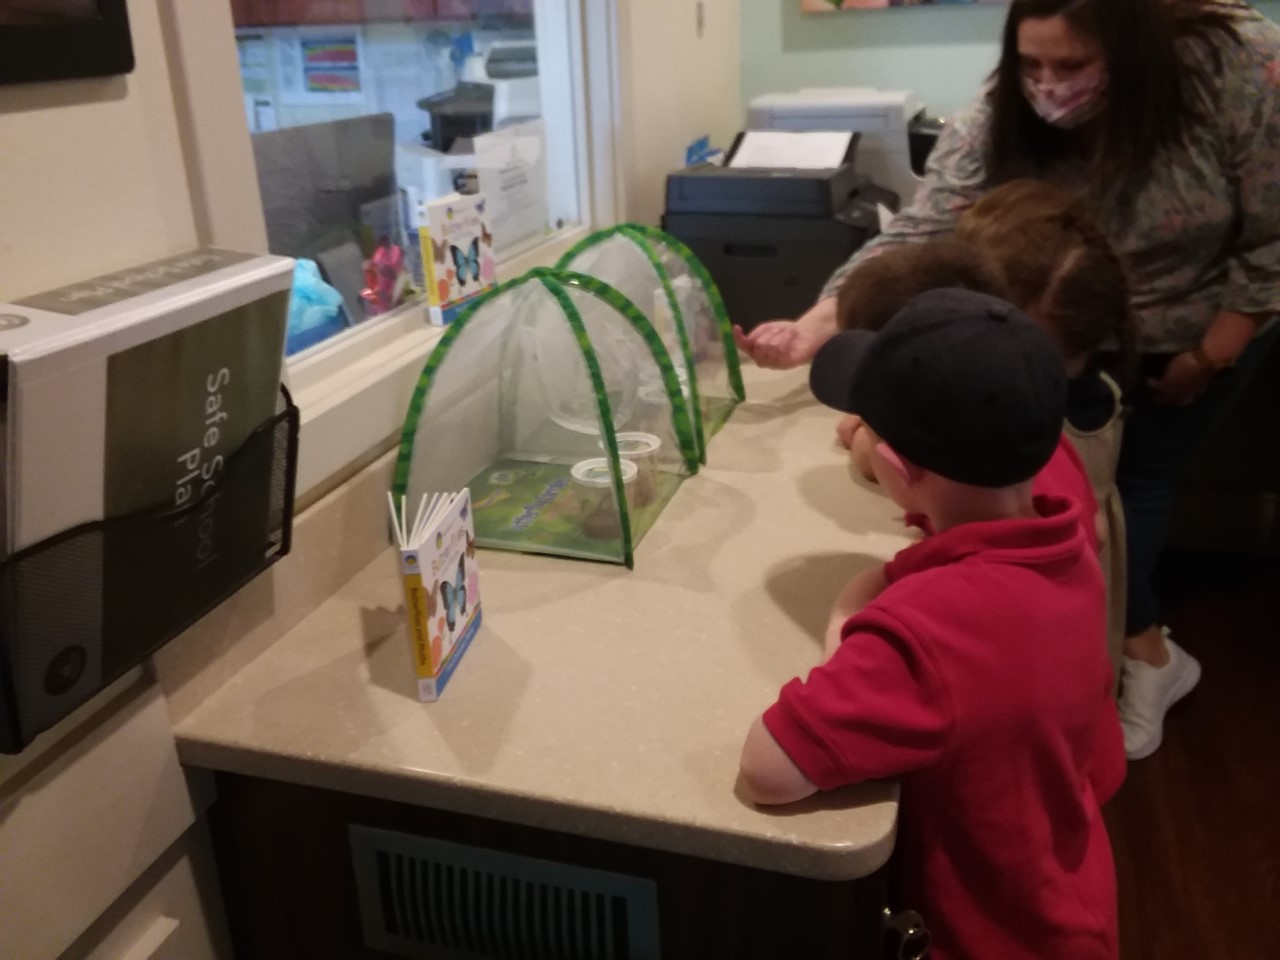 The children are having the opportunity to observe caterpillars turning into butterflies at the school.